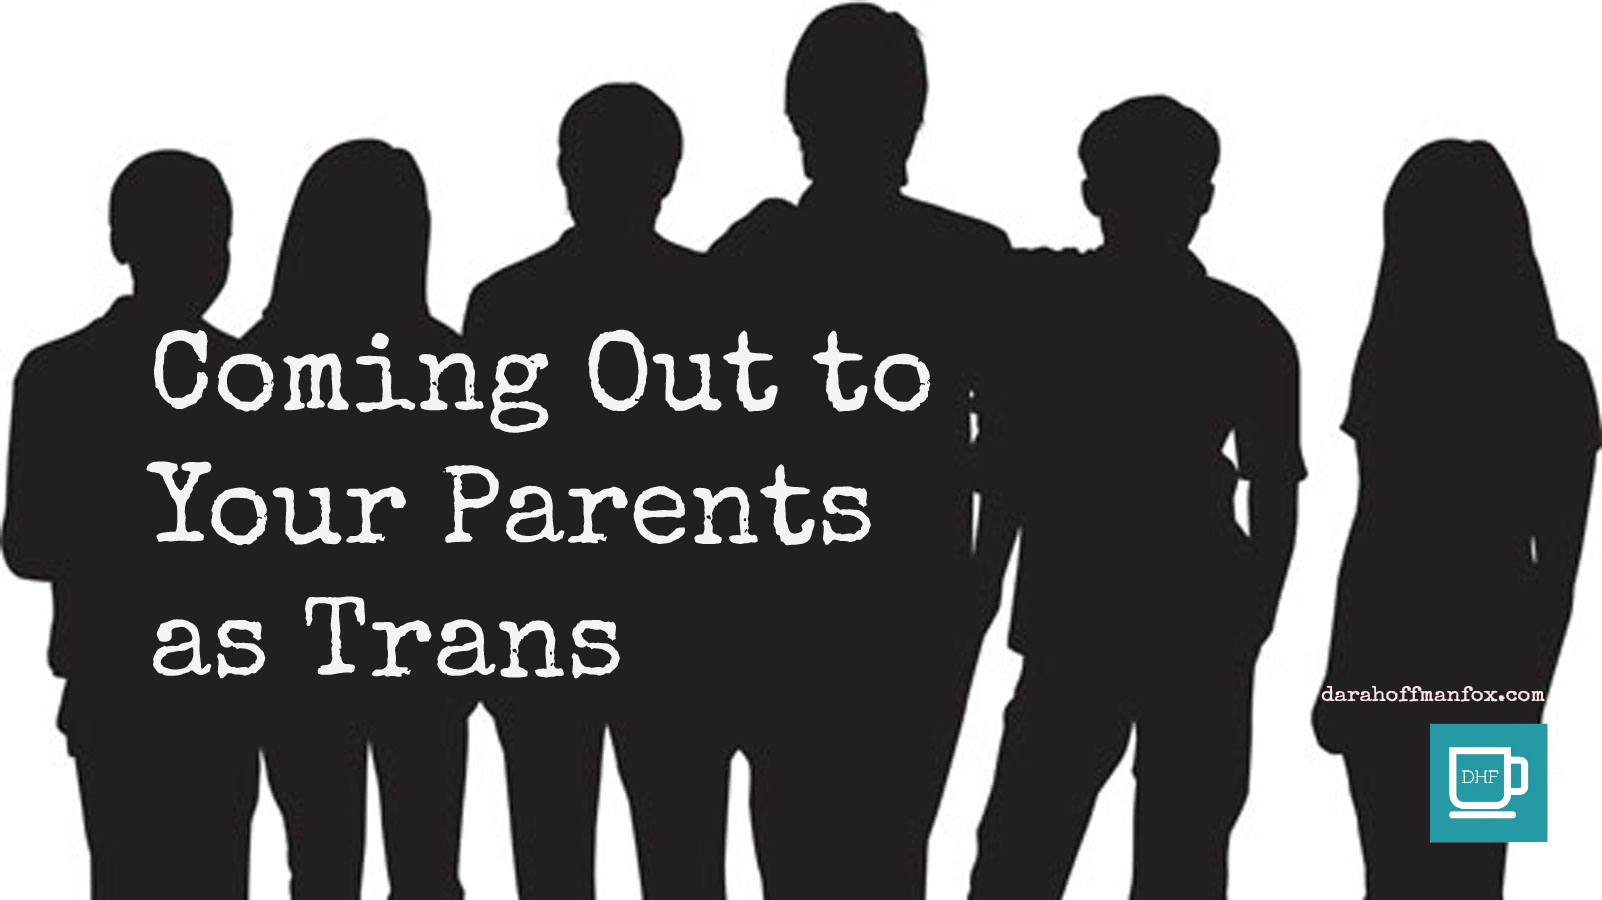 How do you come out to your parents?